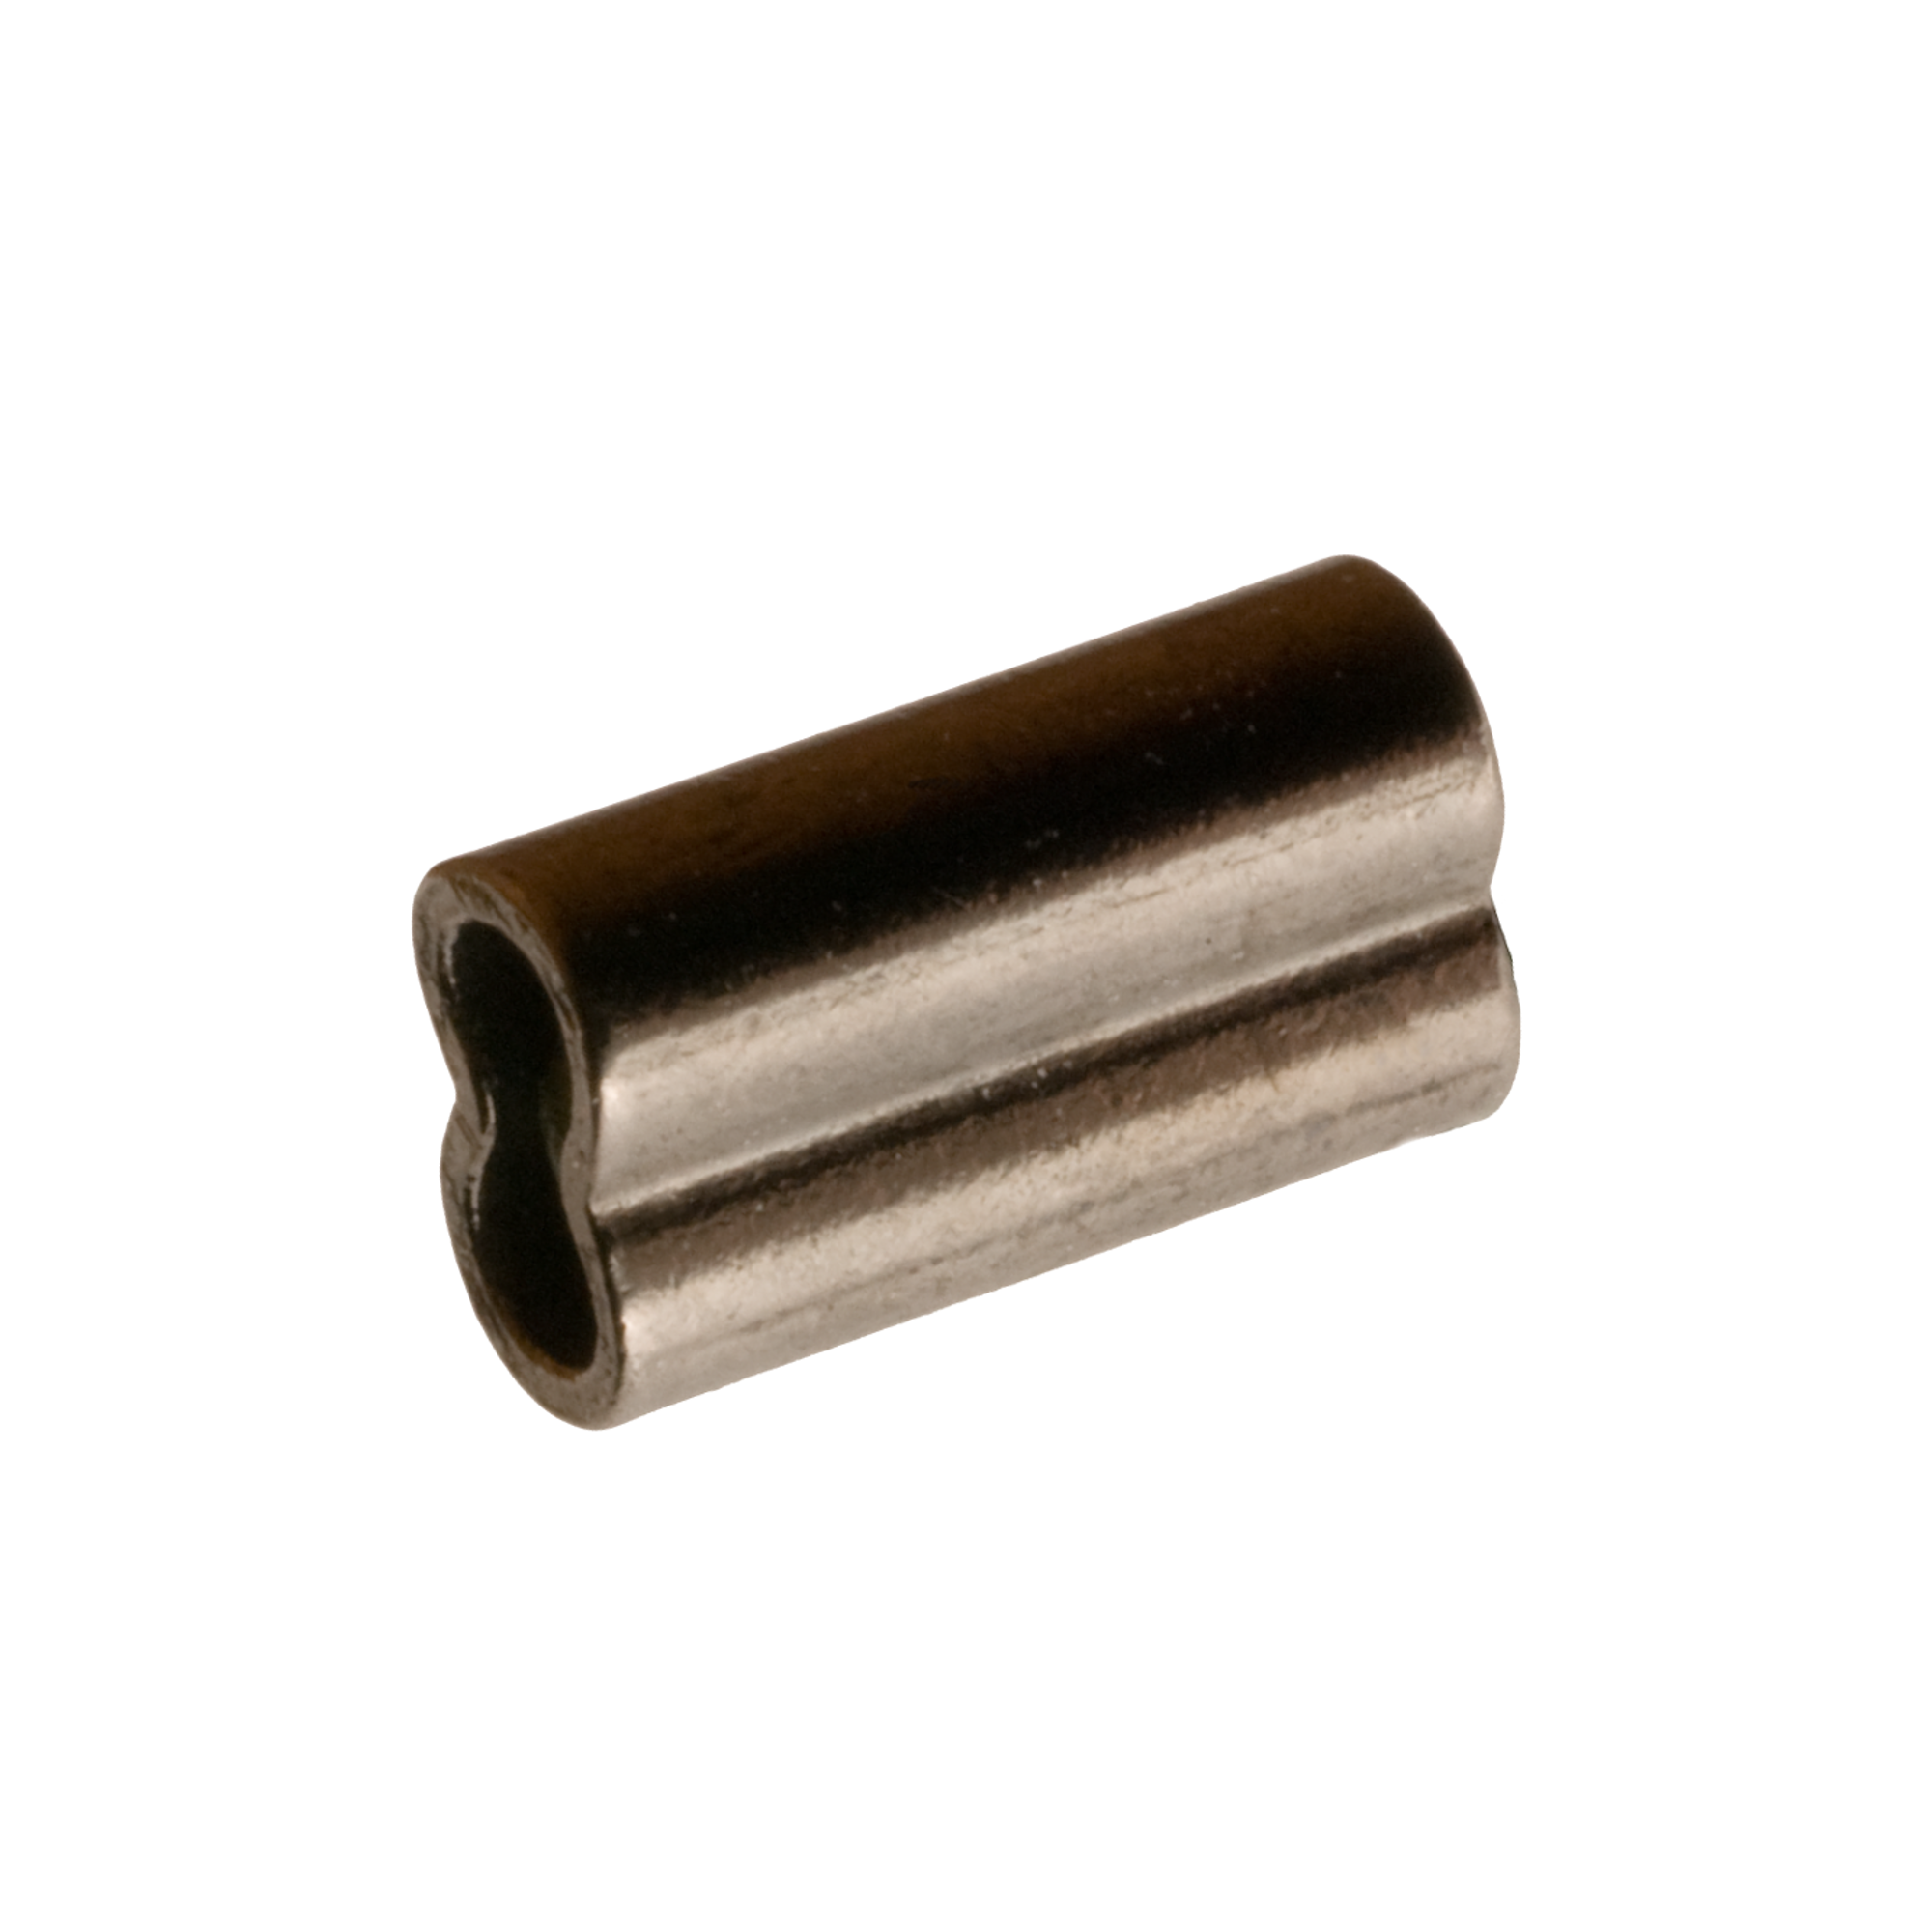 Code 0.8 Double Copper Ferrule